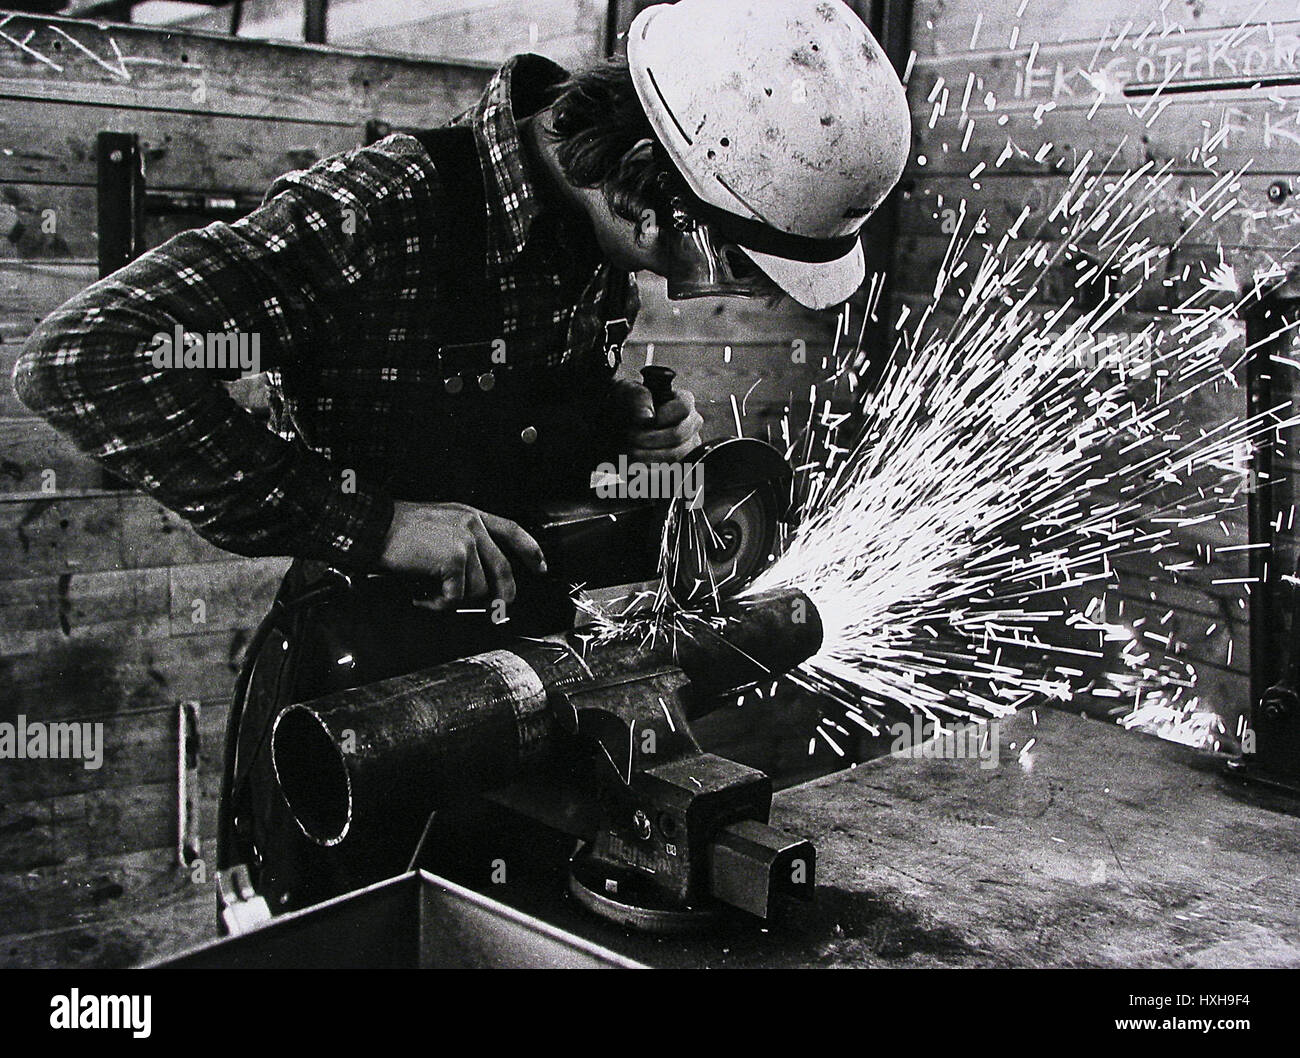 MAN DOING METALWORK ENGLAND 01 January 1970 - Stock Image